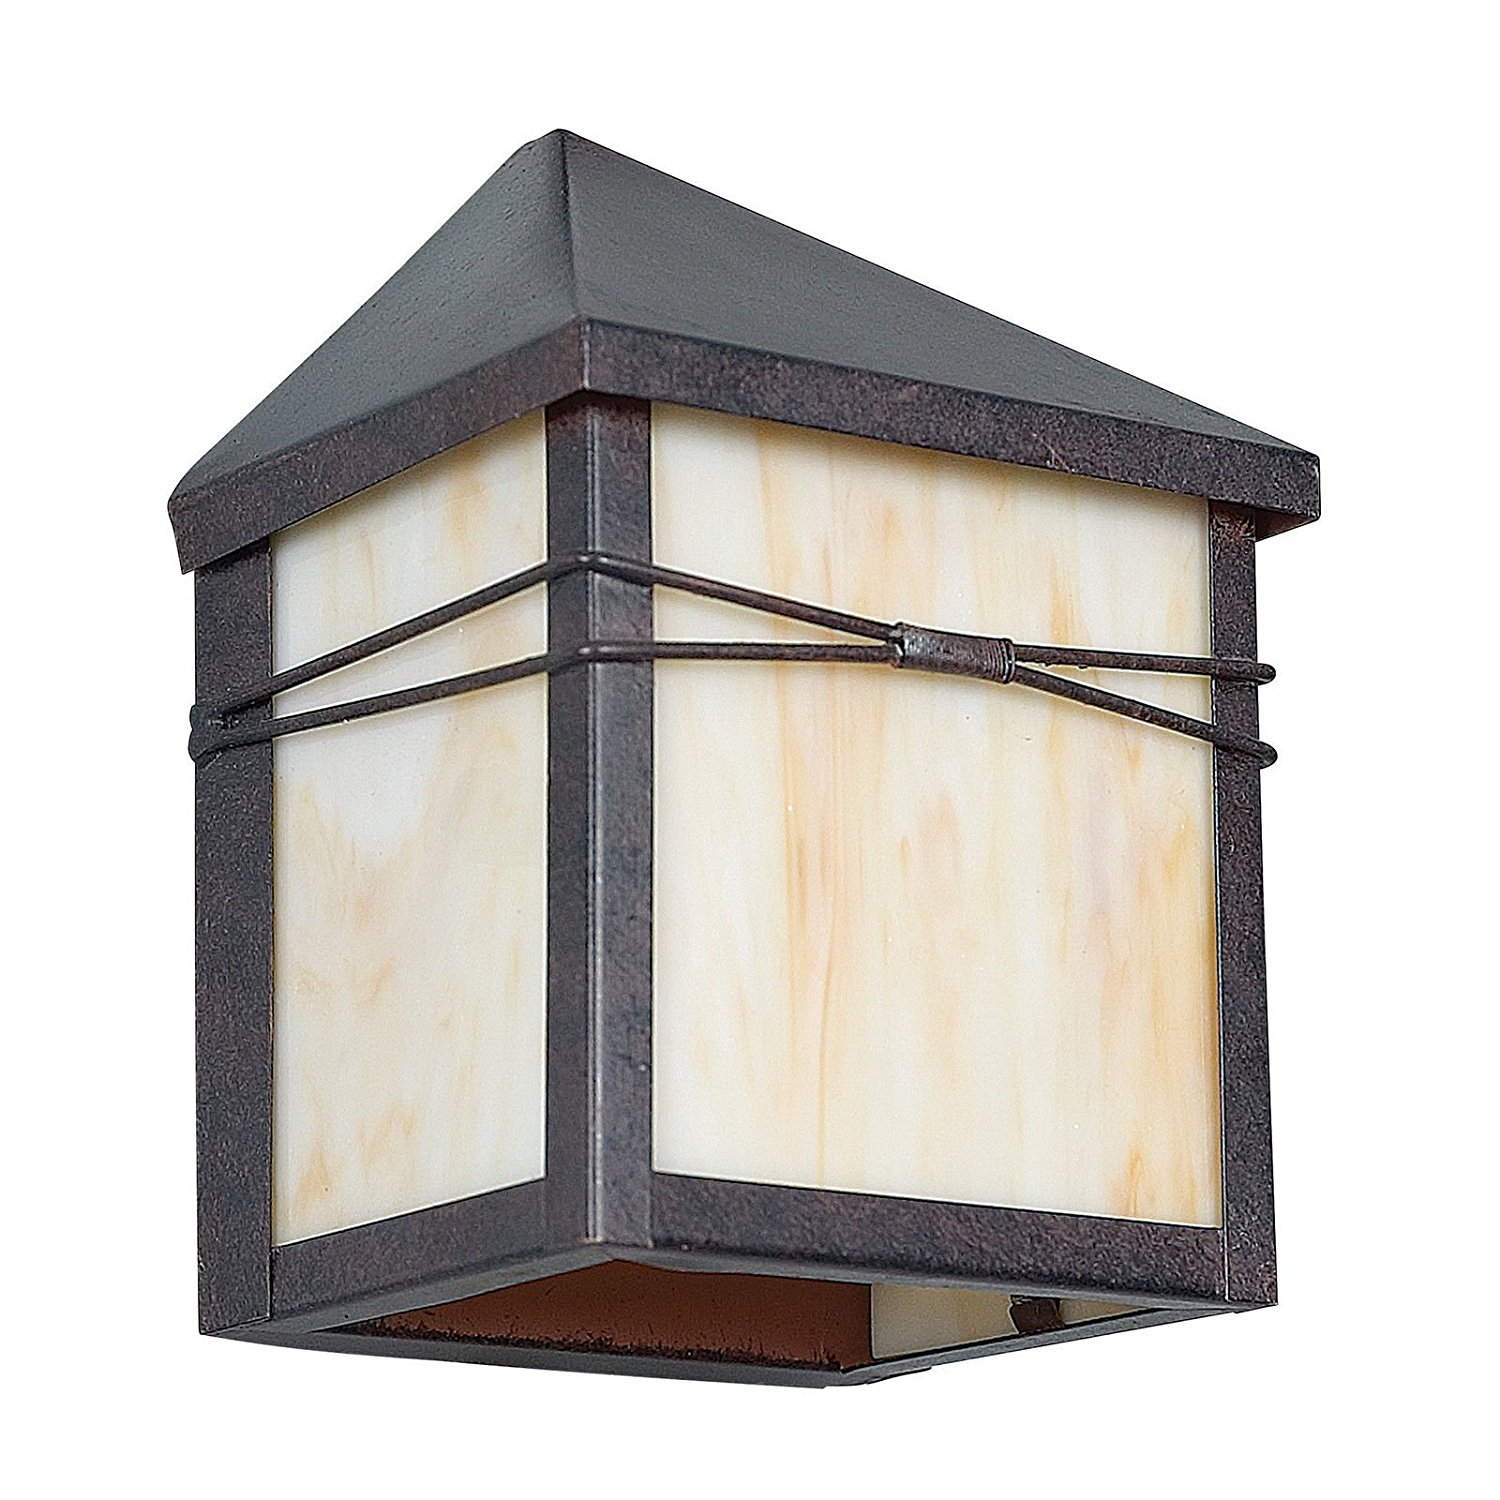 Cheap Mission Sconce Find Mission Sconce Deals On Line At Alibaba